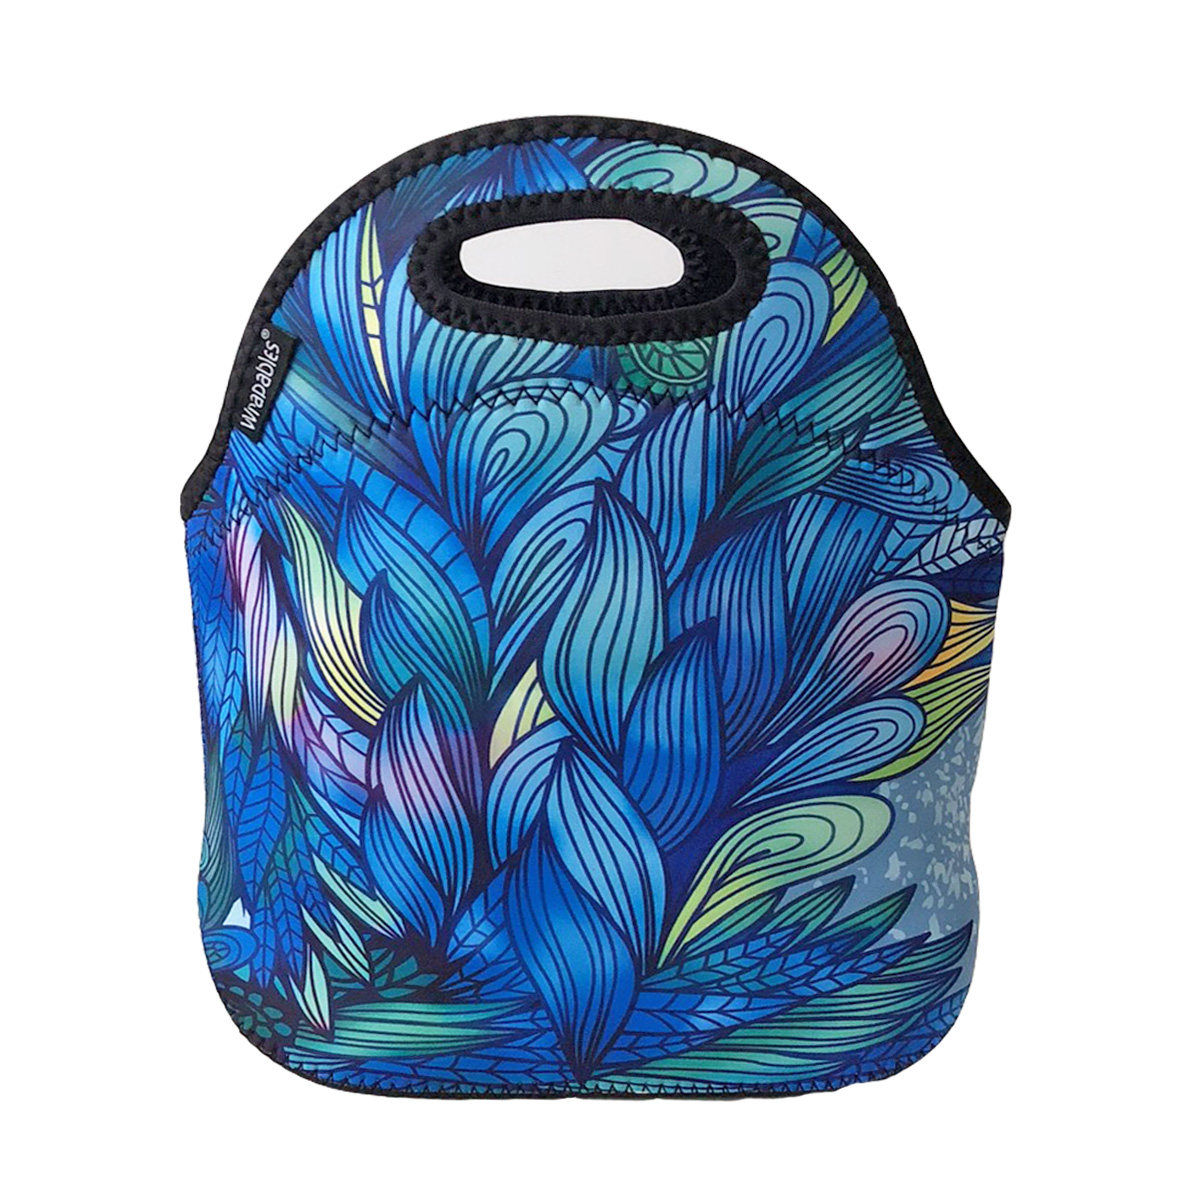 ALLYDREW Insulated Neoprene Lunch Bag Zipper Lunch Box Tote Baby Bottle Bag, Blue Paradise